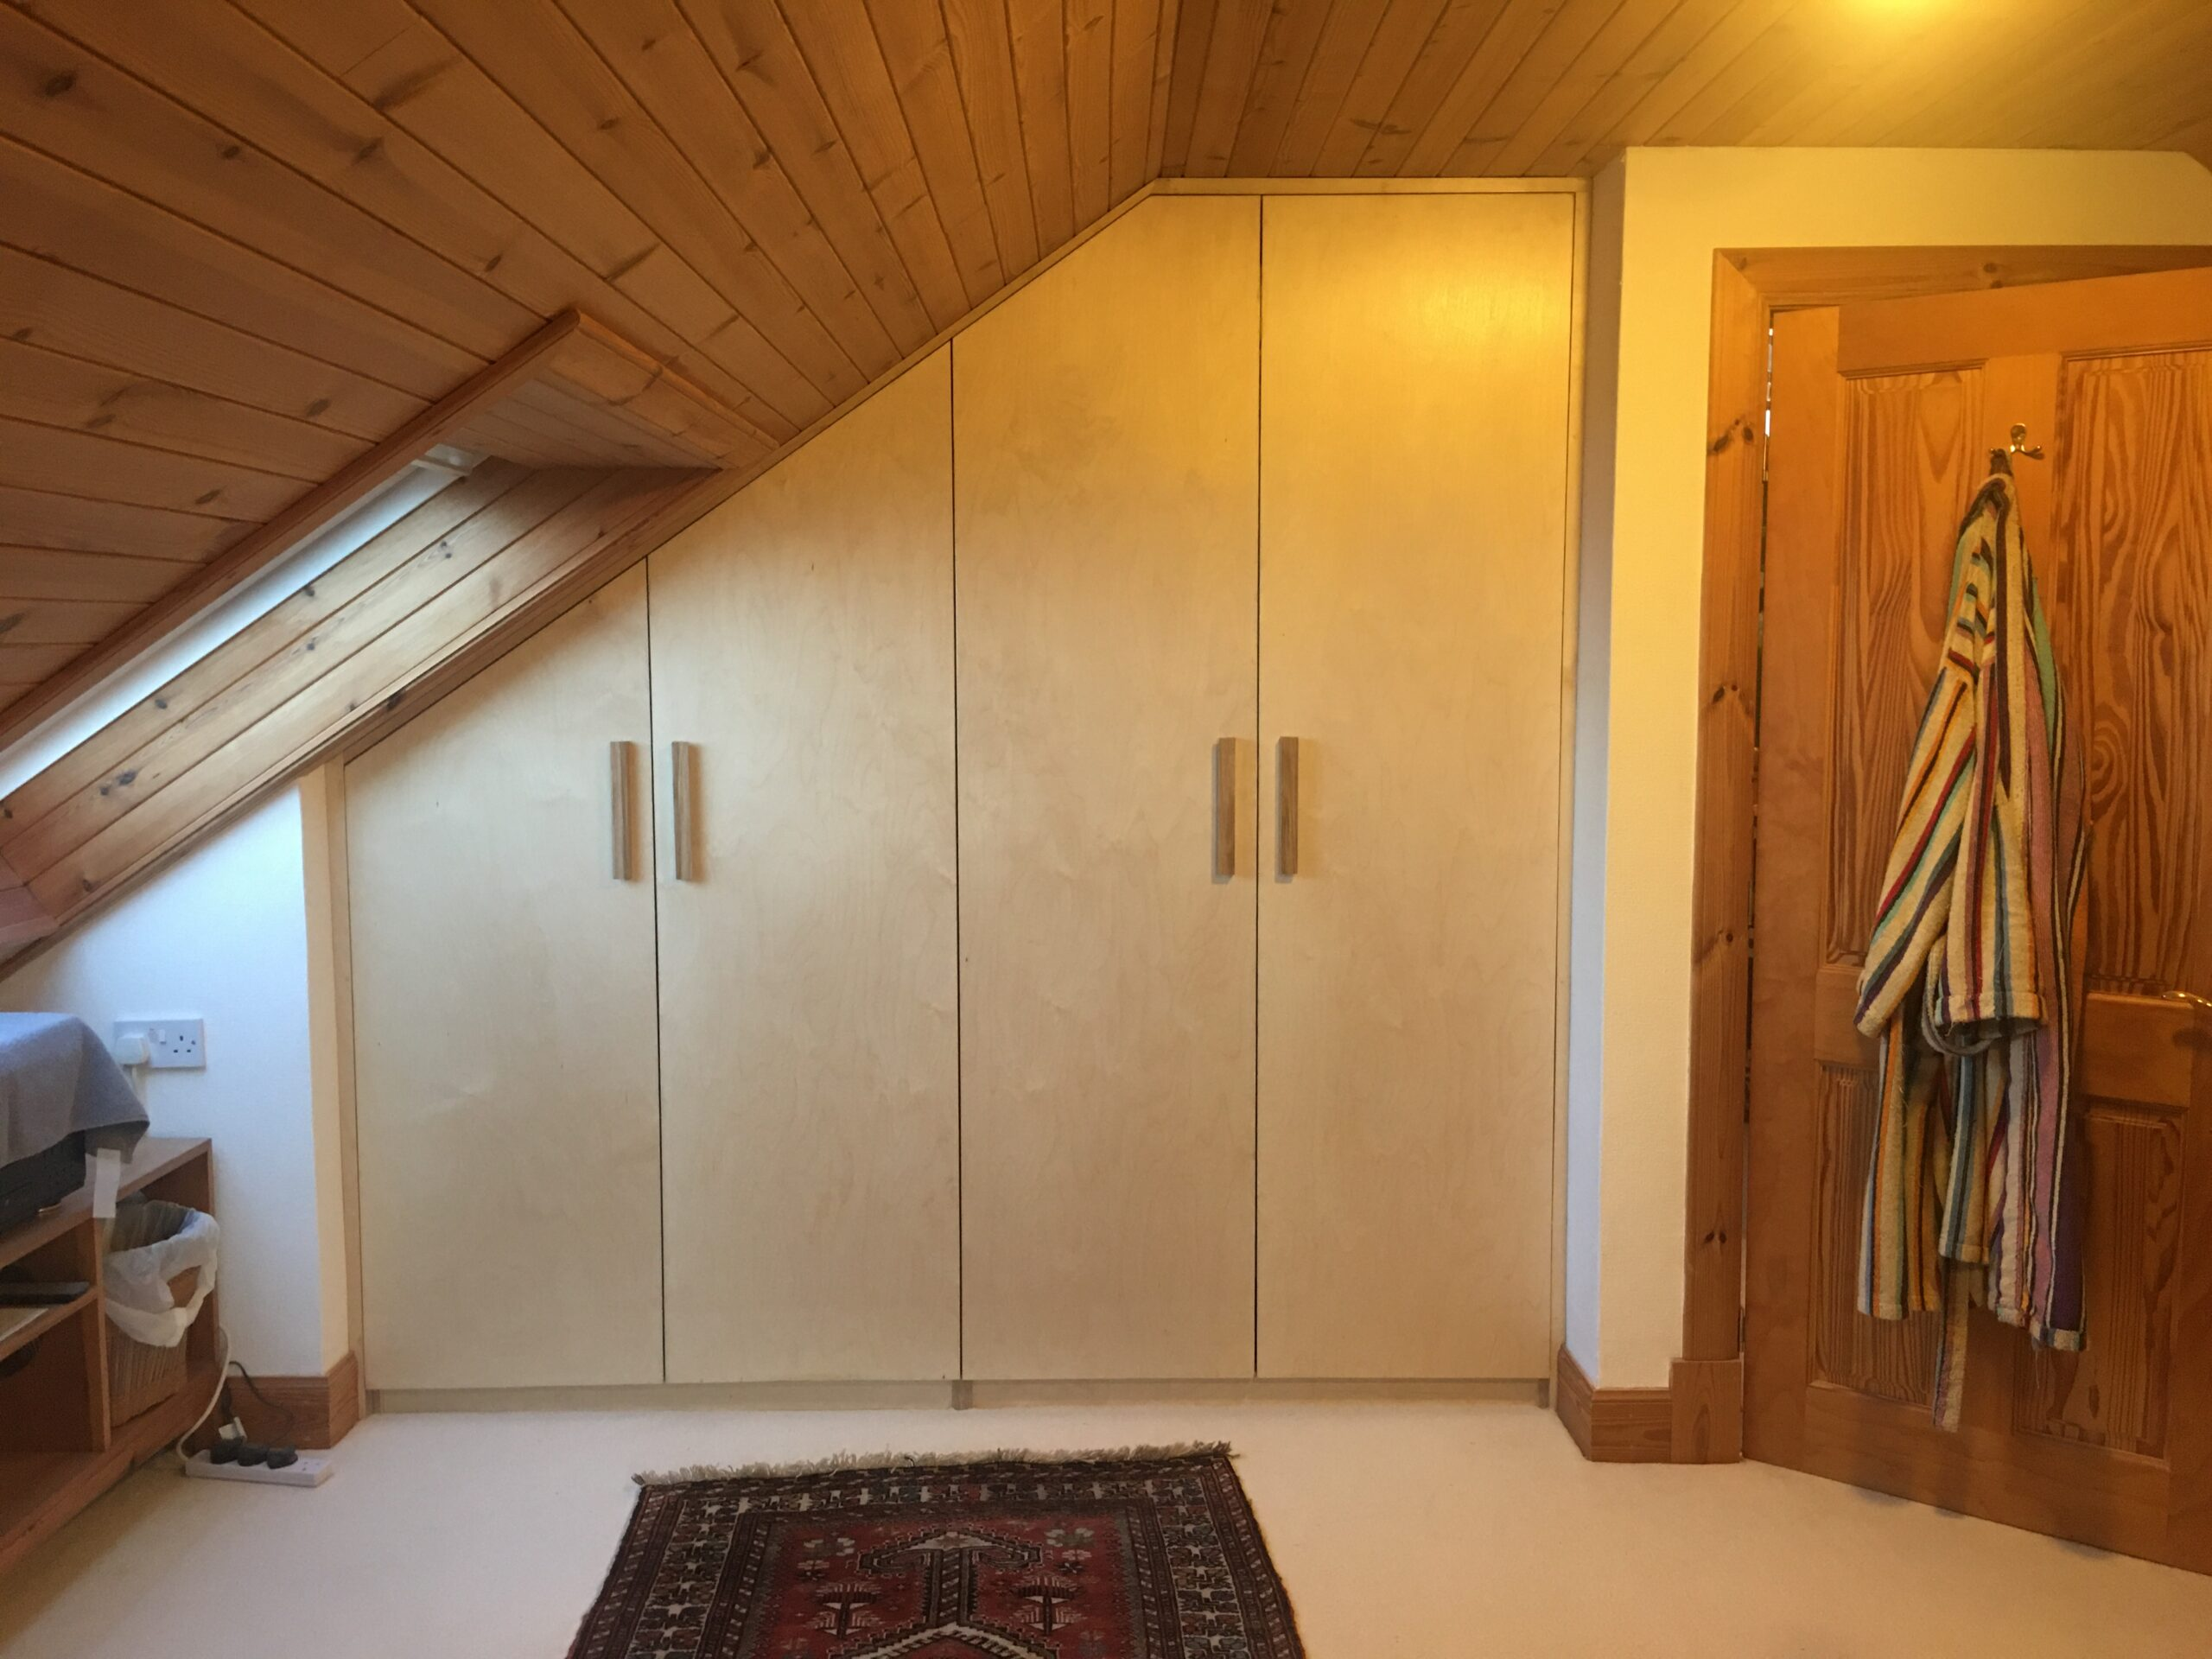 Bespoke birch ply wardrobe